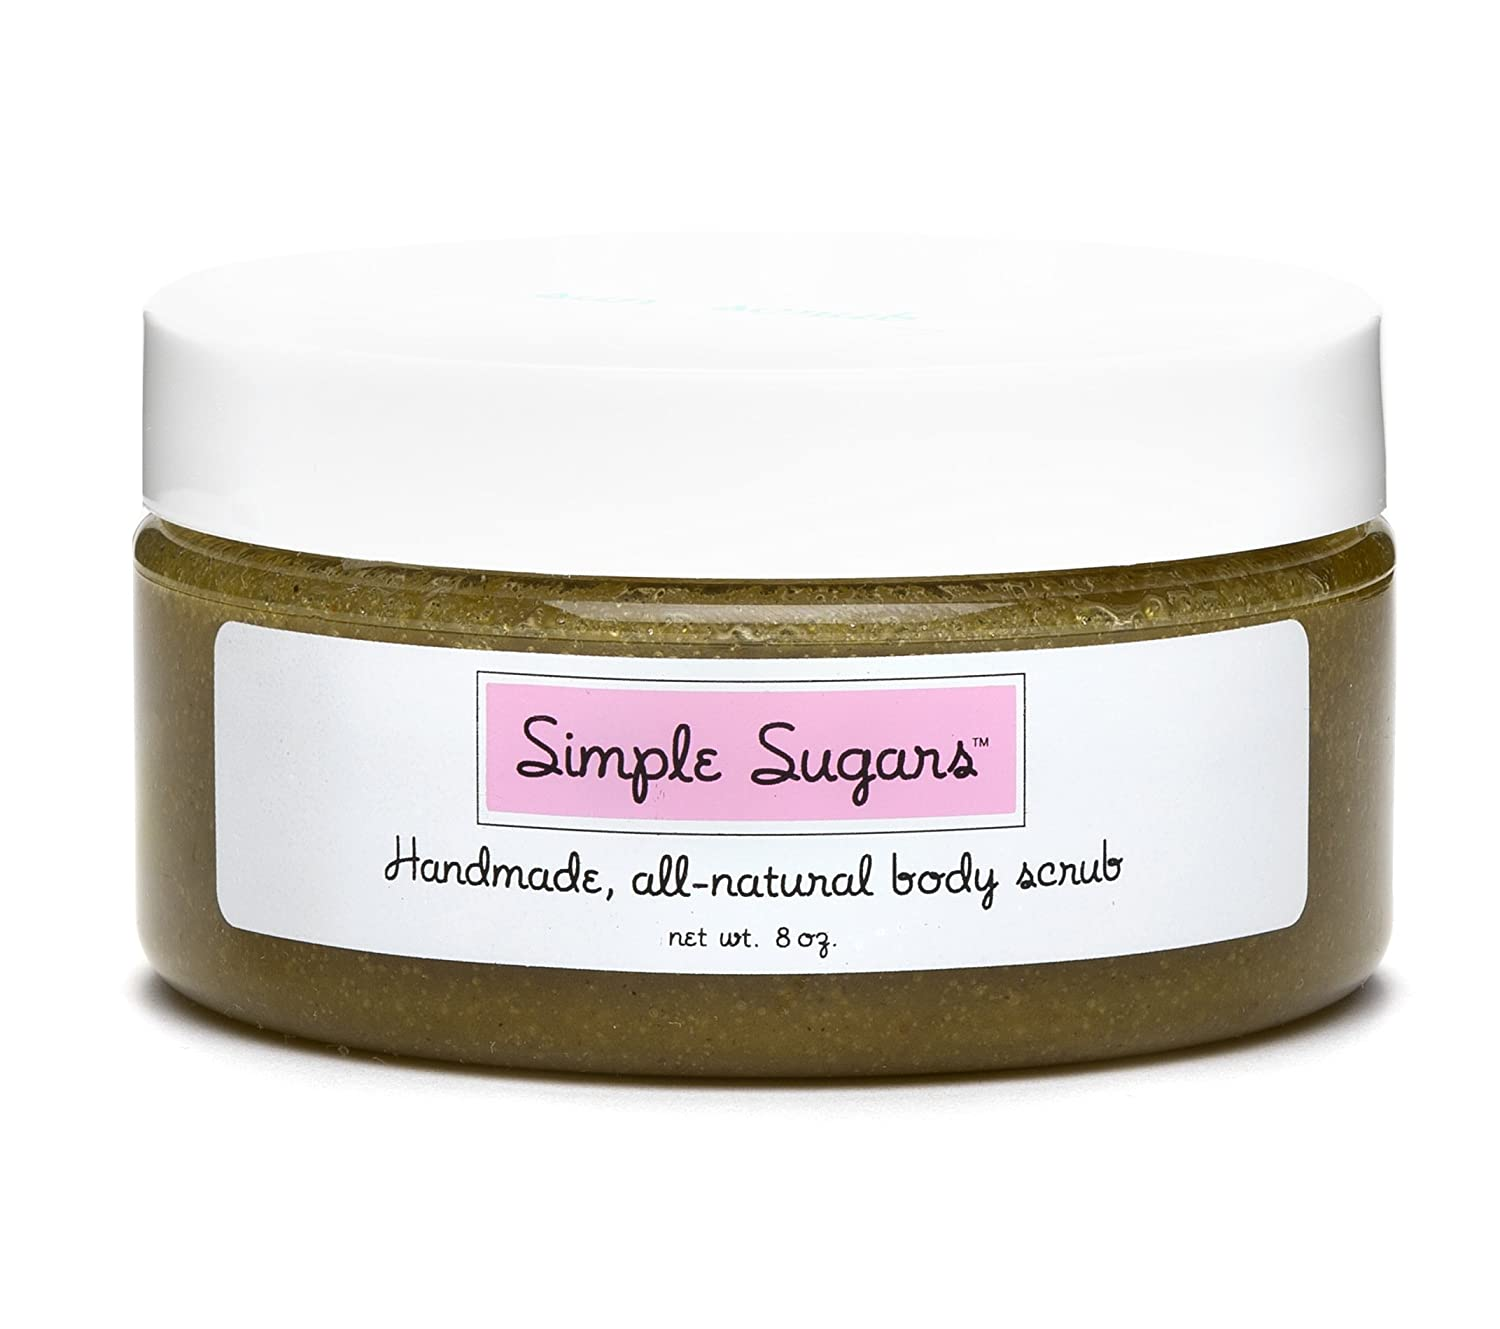 Simple Sugars Green Tea Body Cleansing Exfoliating Moisturizer - Formulated for Sensitive Skin - Eczema, Dry Skin, Psoriasis